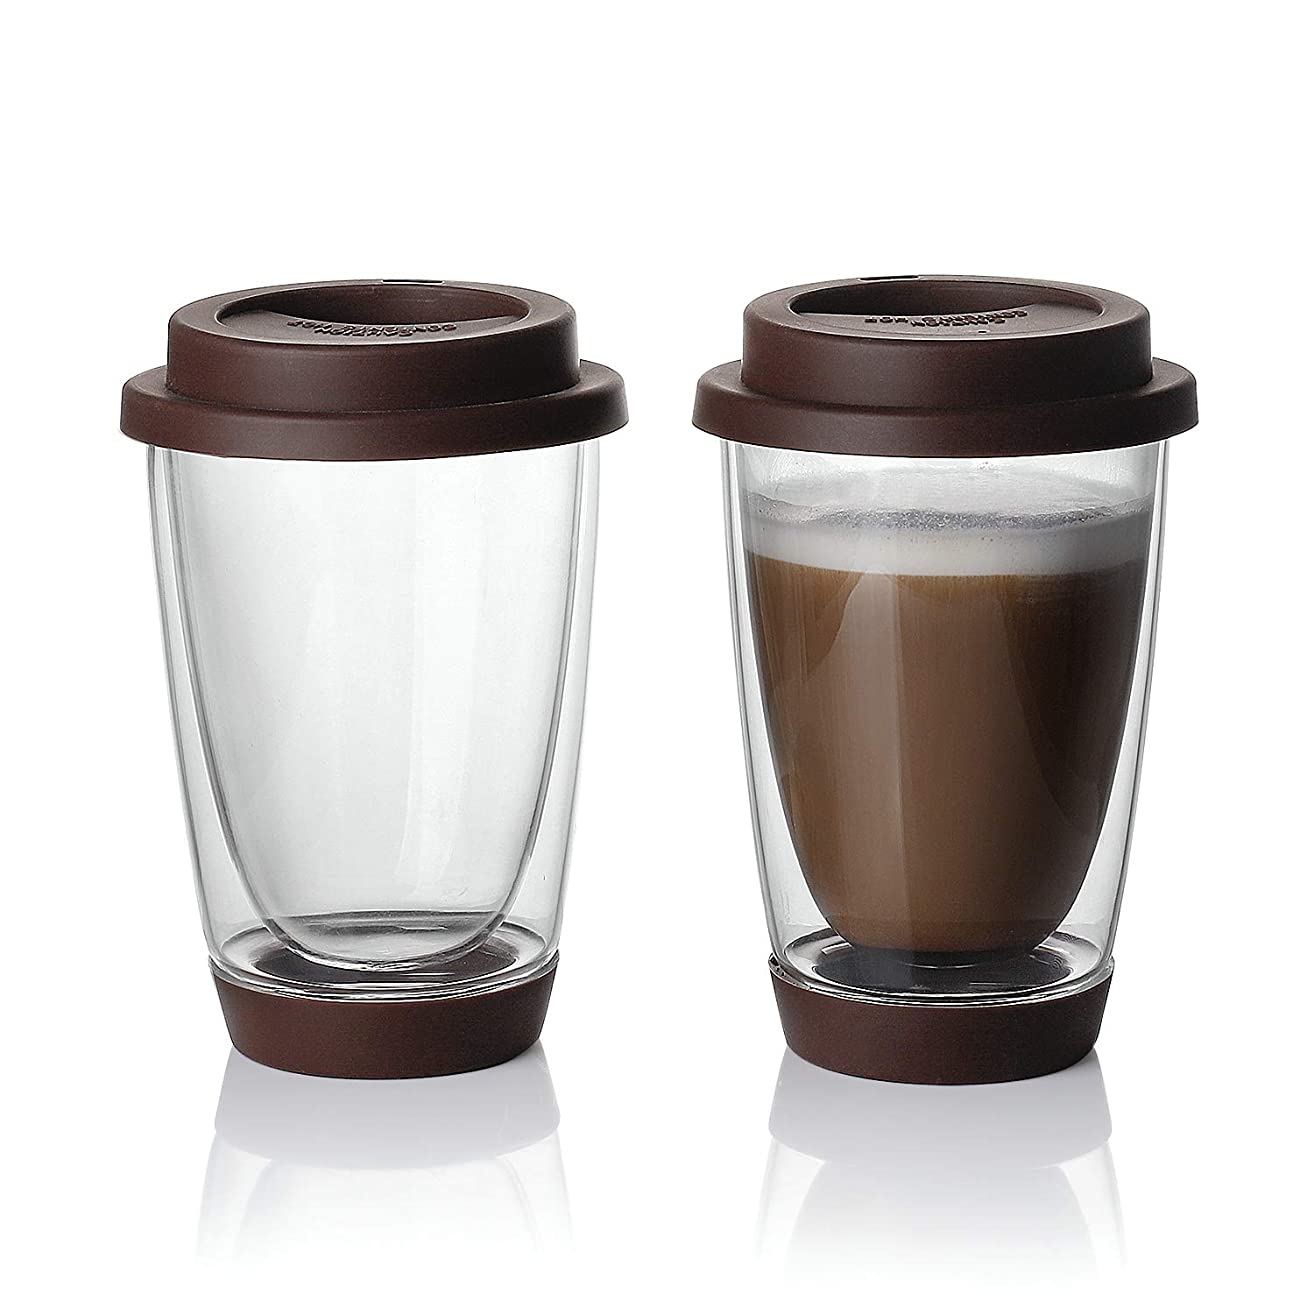 Sweese Glass Travel Coffee Mug Set of 2 - Double Wall Thermo Insulated Borosilicate Reusable Cup with Silicone Lid and Base, Perfect for Cappuccino, Latte, Espresso,Tea, Beverages, 13.5 oz (Brown)